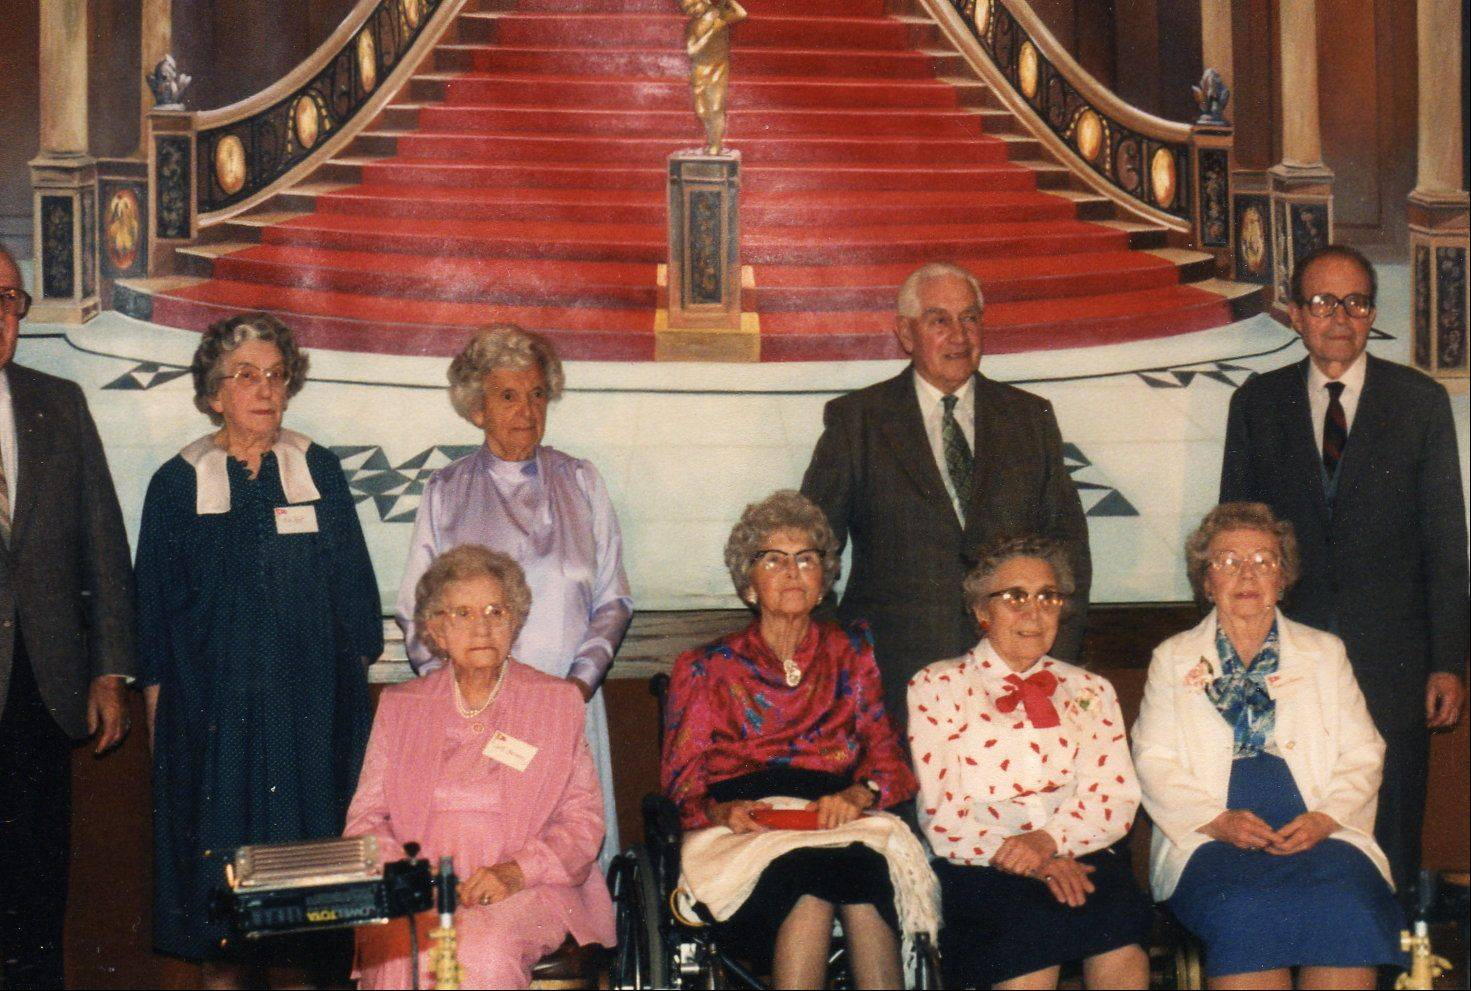 Titanic survivors attend a Titanic Historical Society Convention in Wilmington, Del., in the late 1980s. Eleanor Johnson Shuman is at bottom right.